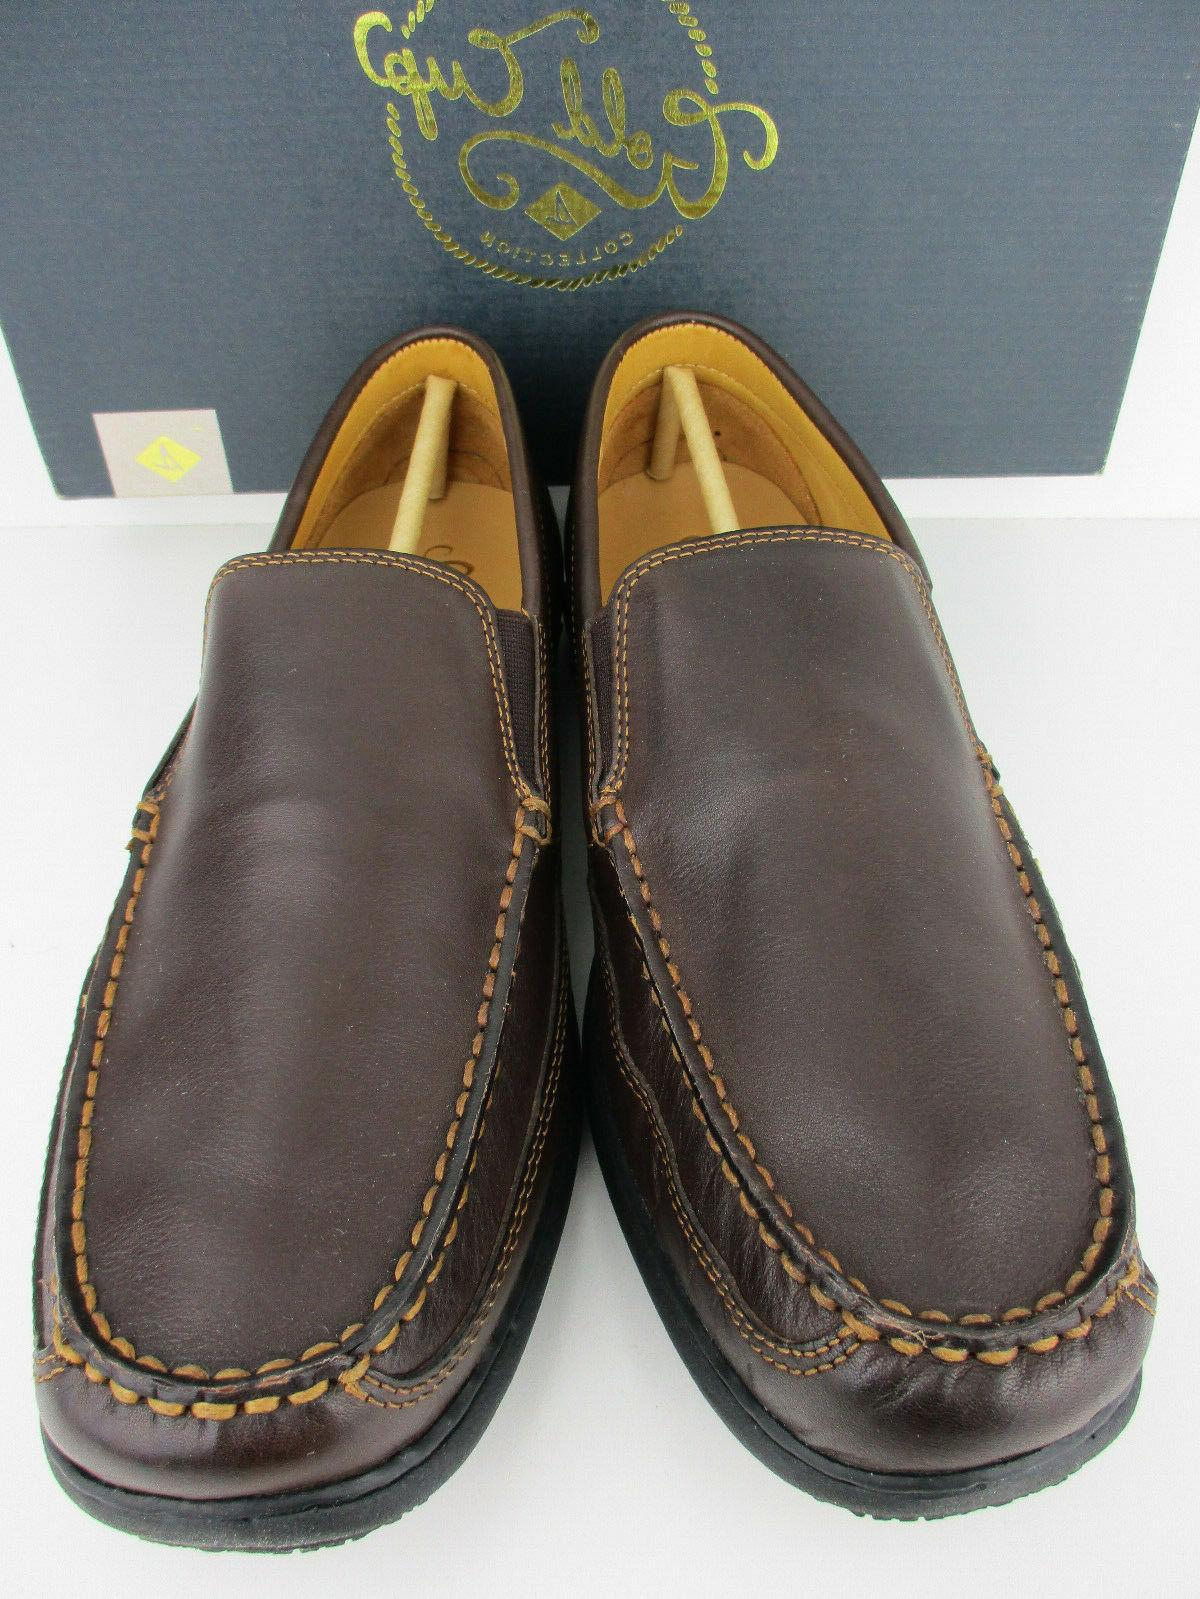 SPERRY TOP CUP MEN'S LOAFER BROWN WITH BOX